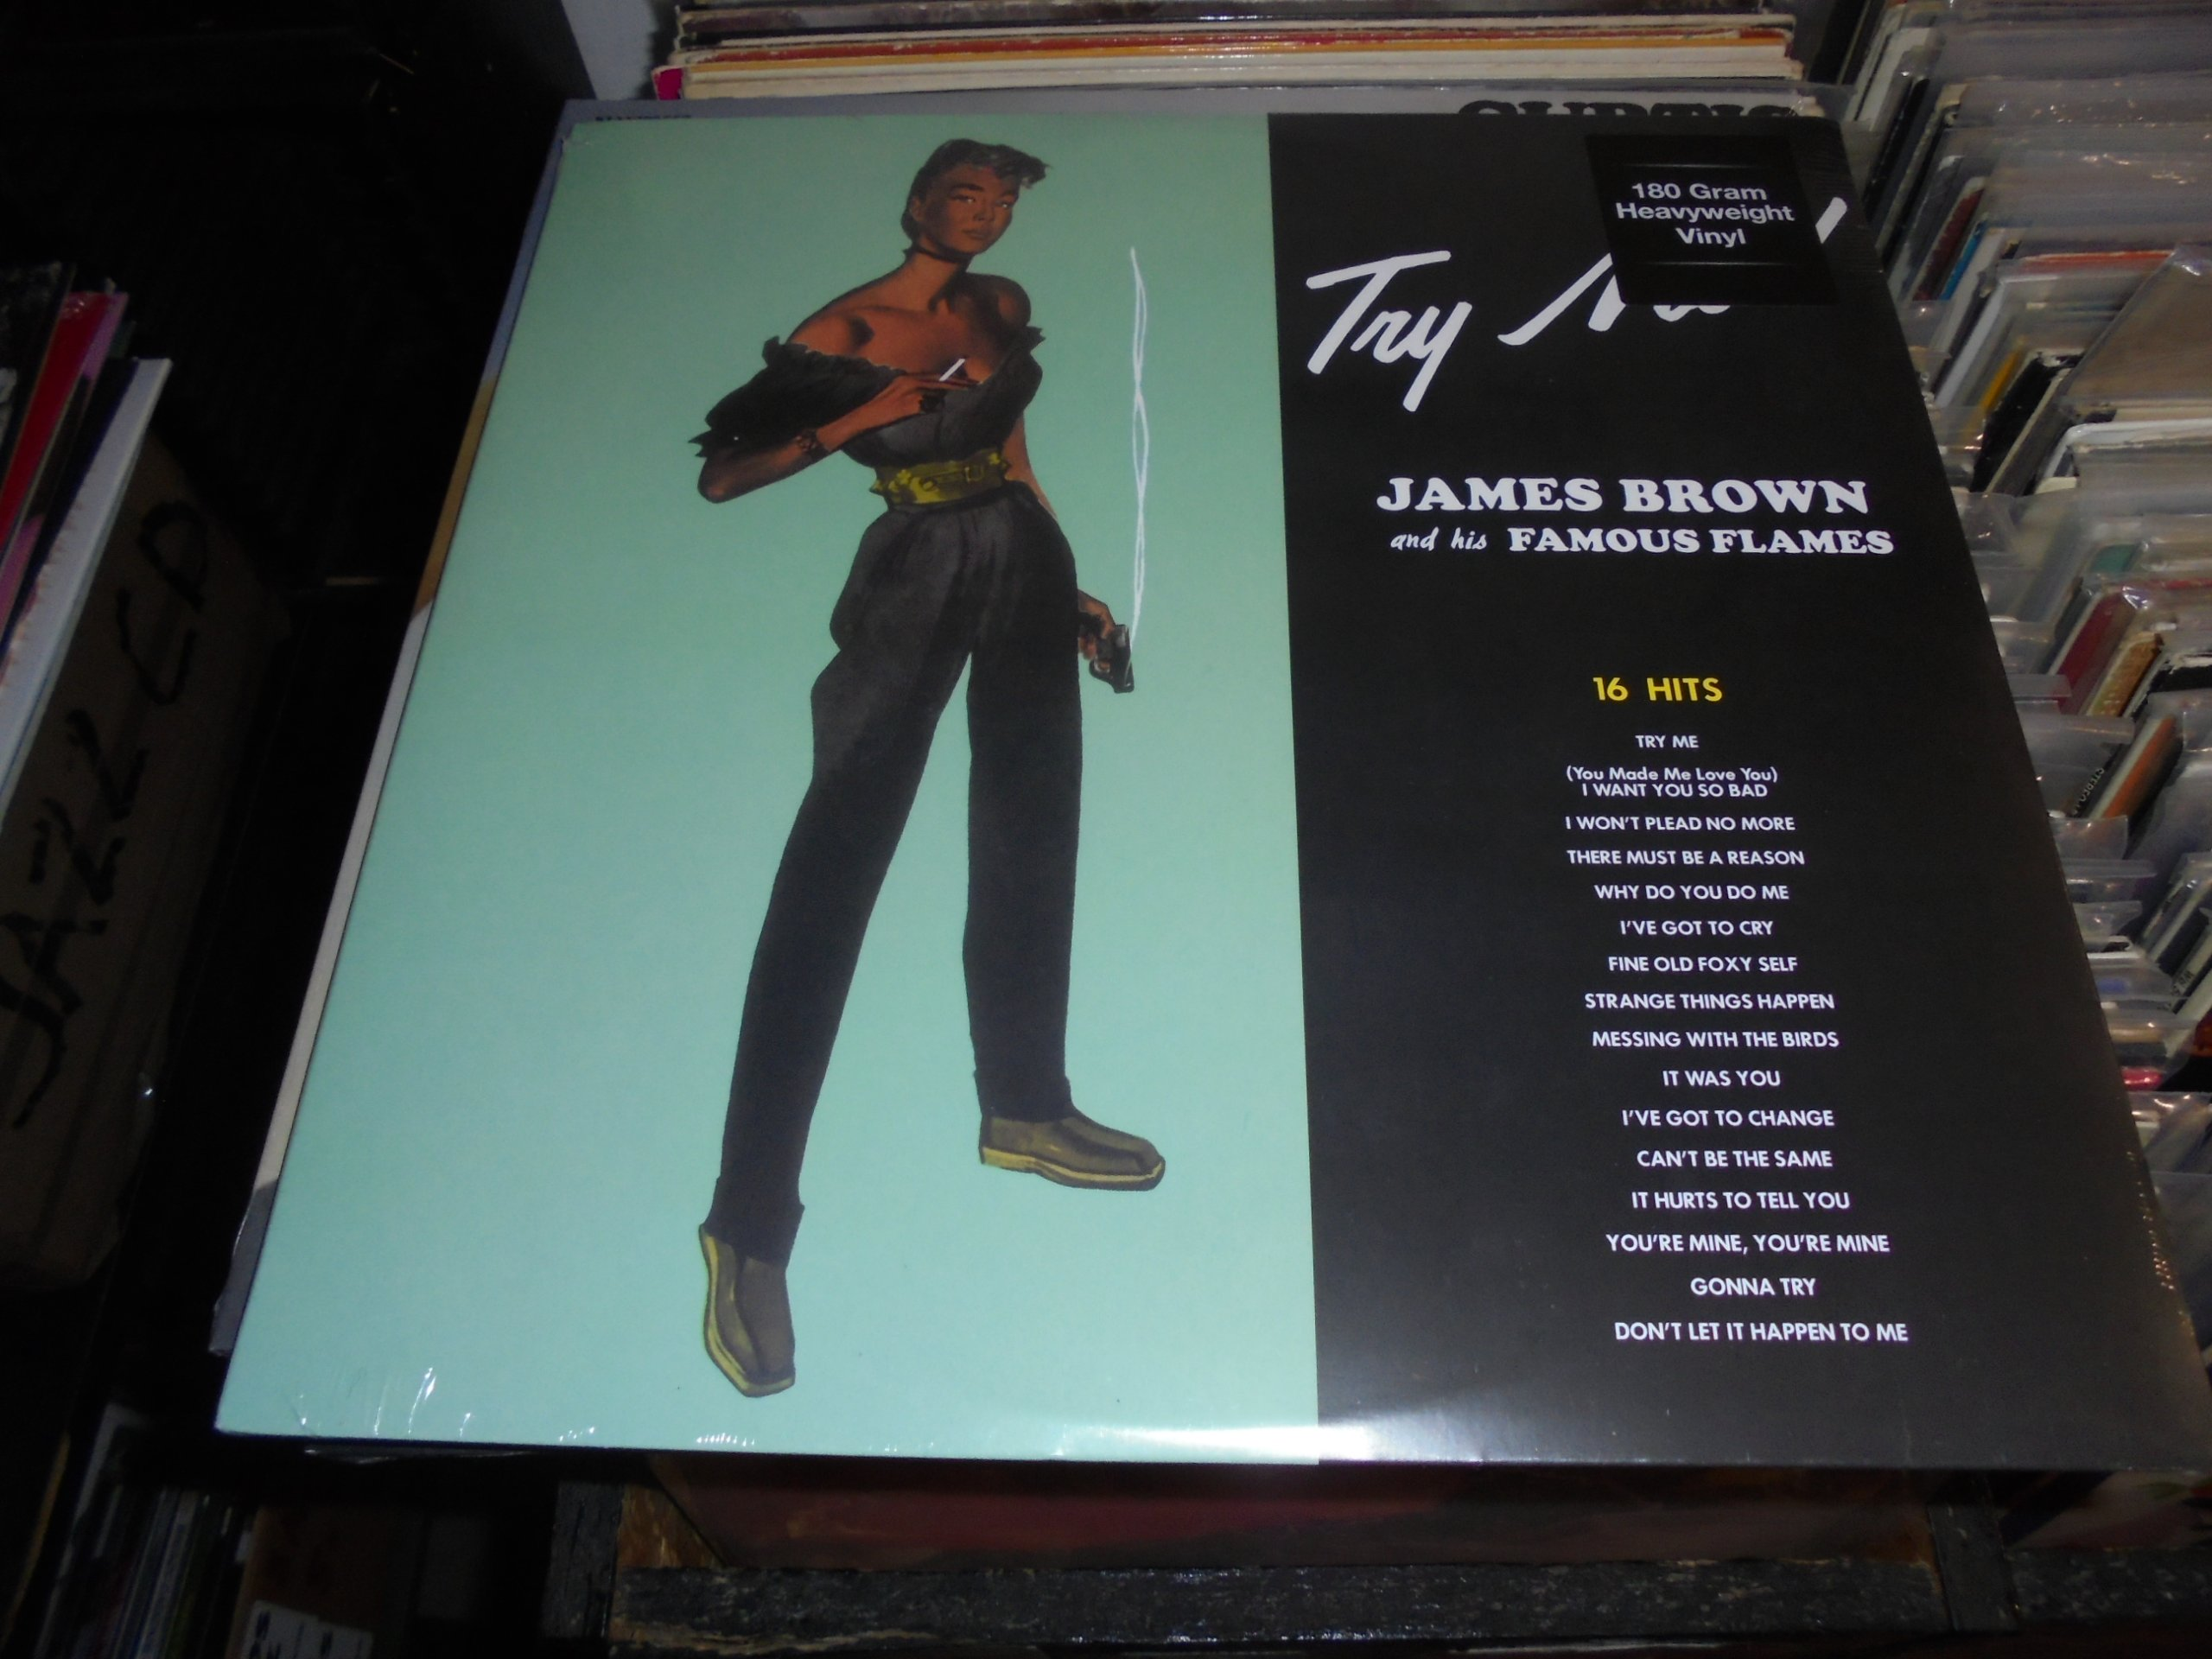 JAMES BROWN TRY ME! LP NOWA FOLIA